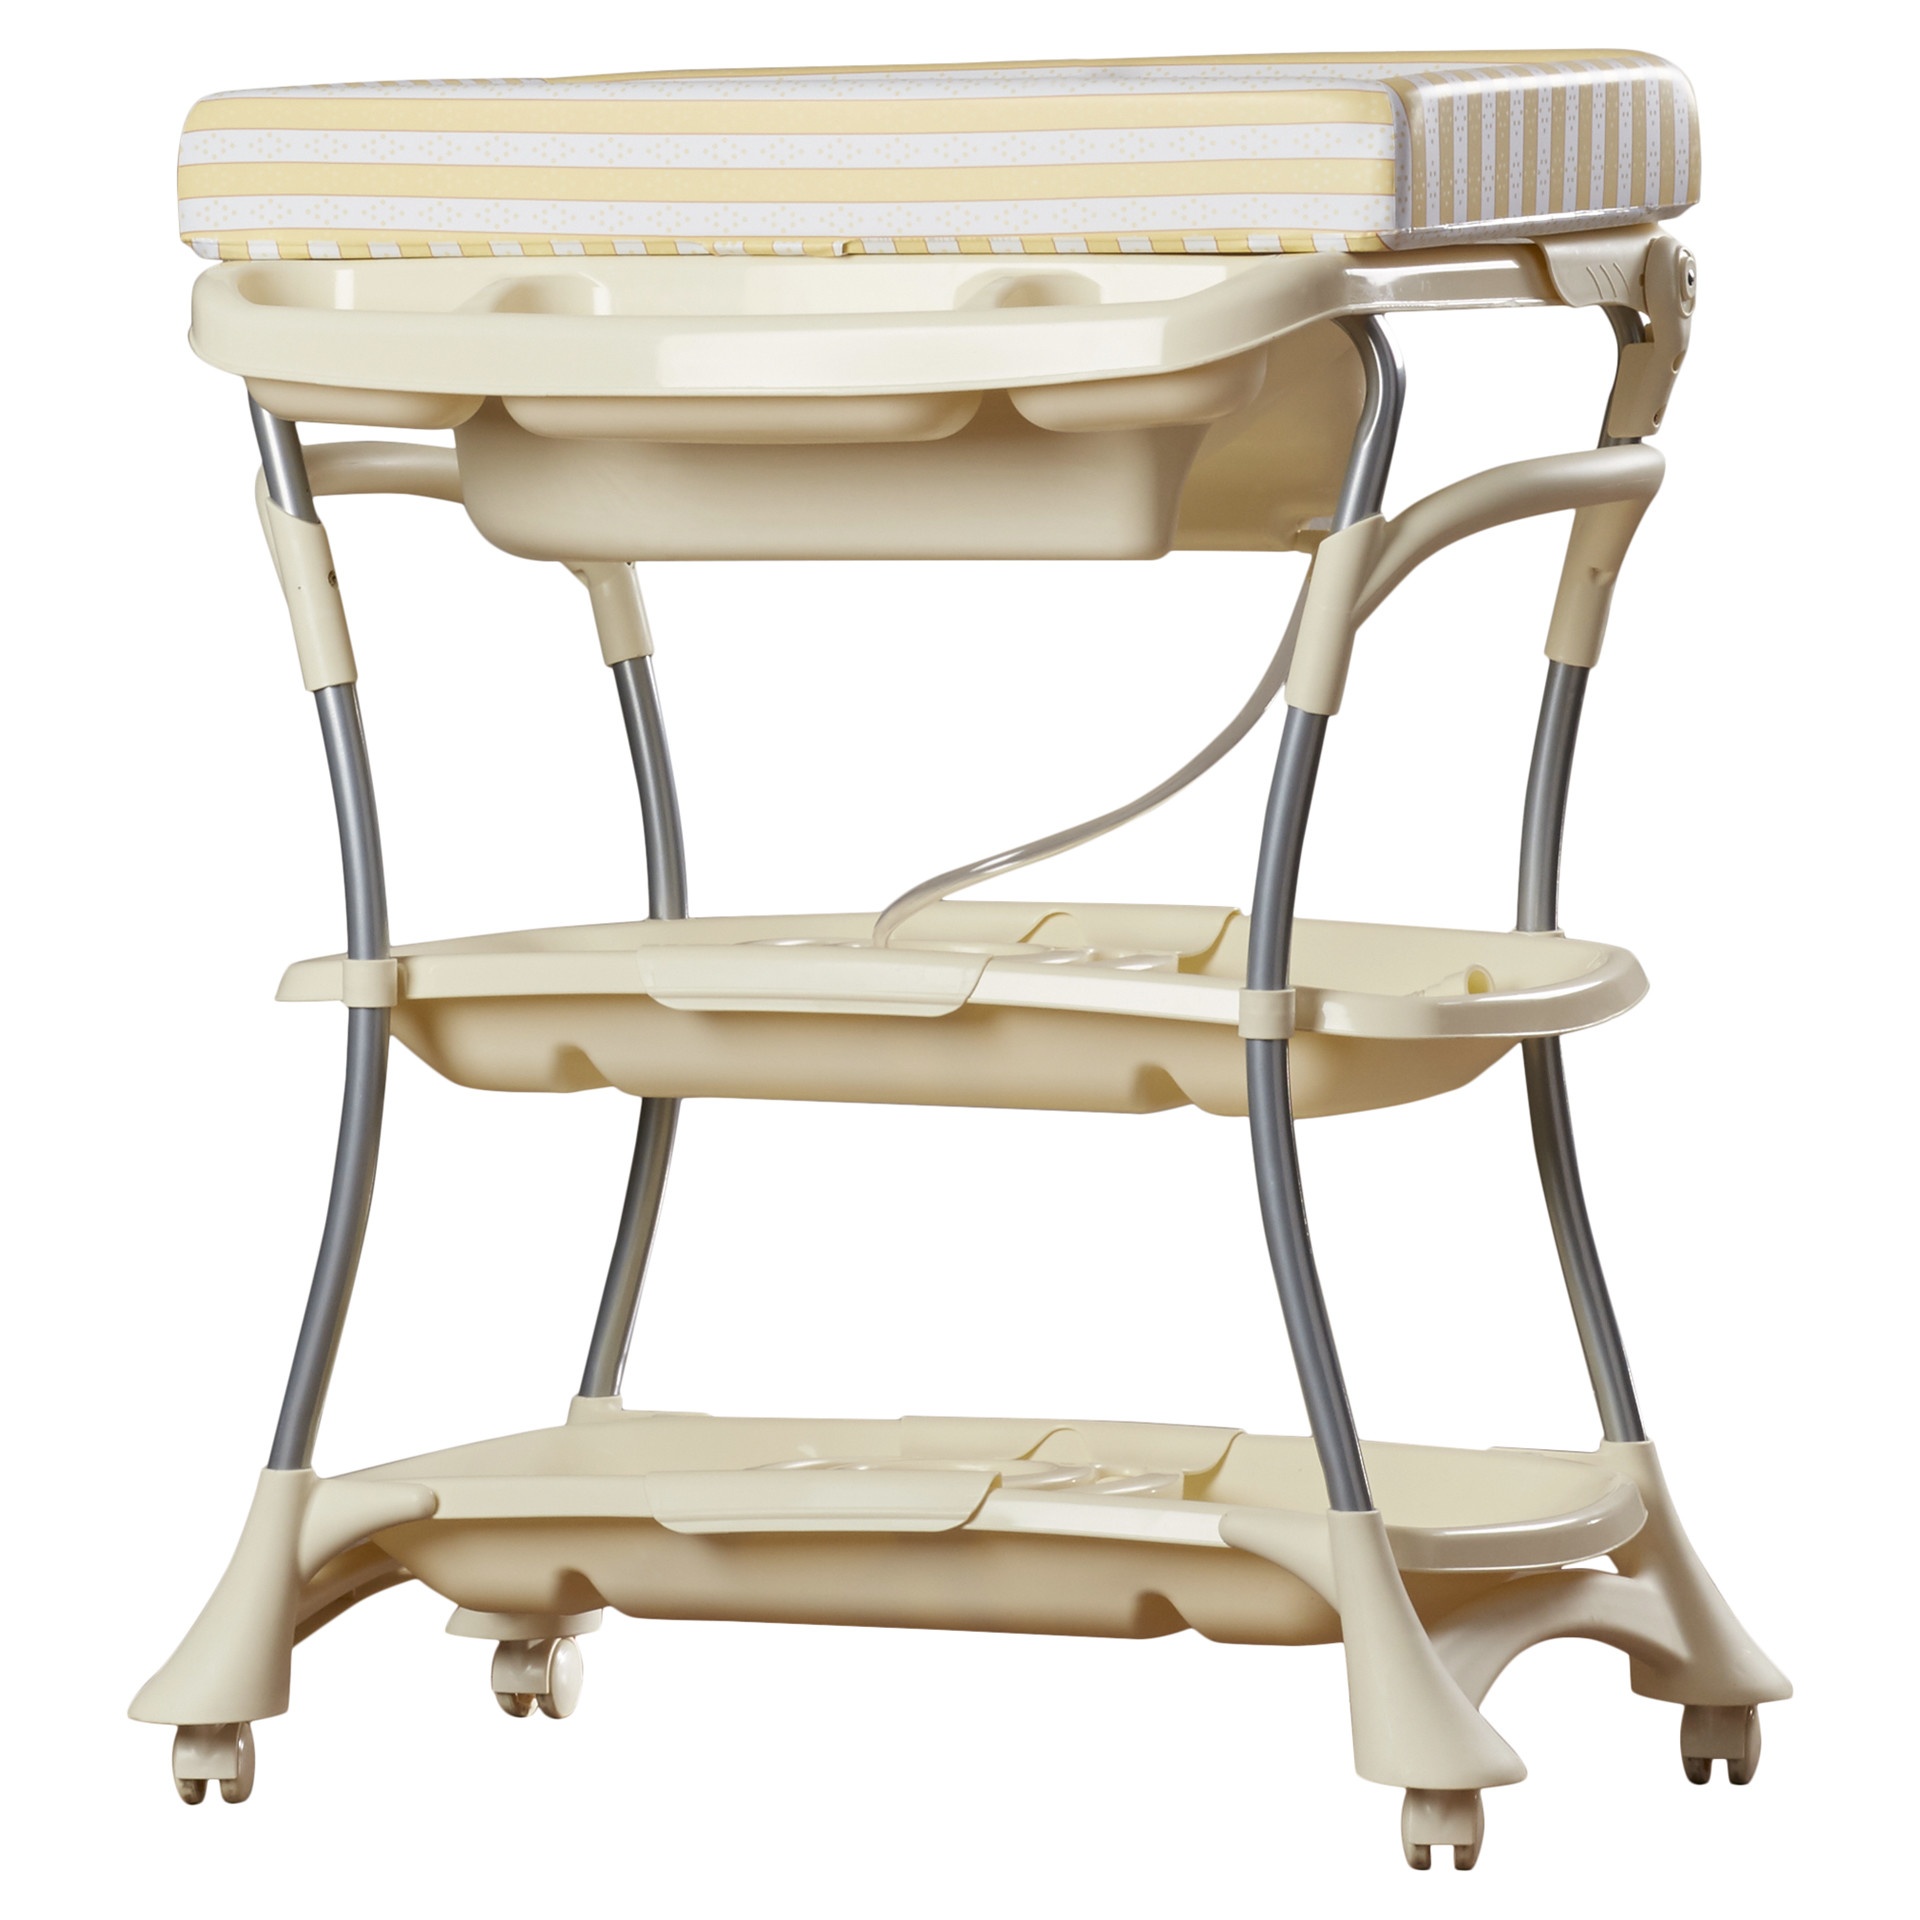 Primo Baby Euro Spa Bath And Table - Table Designs